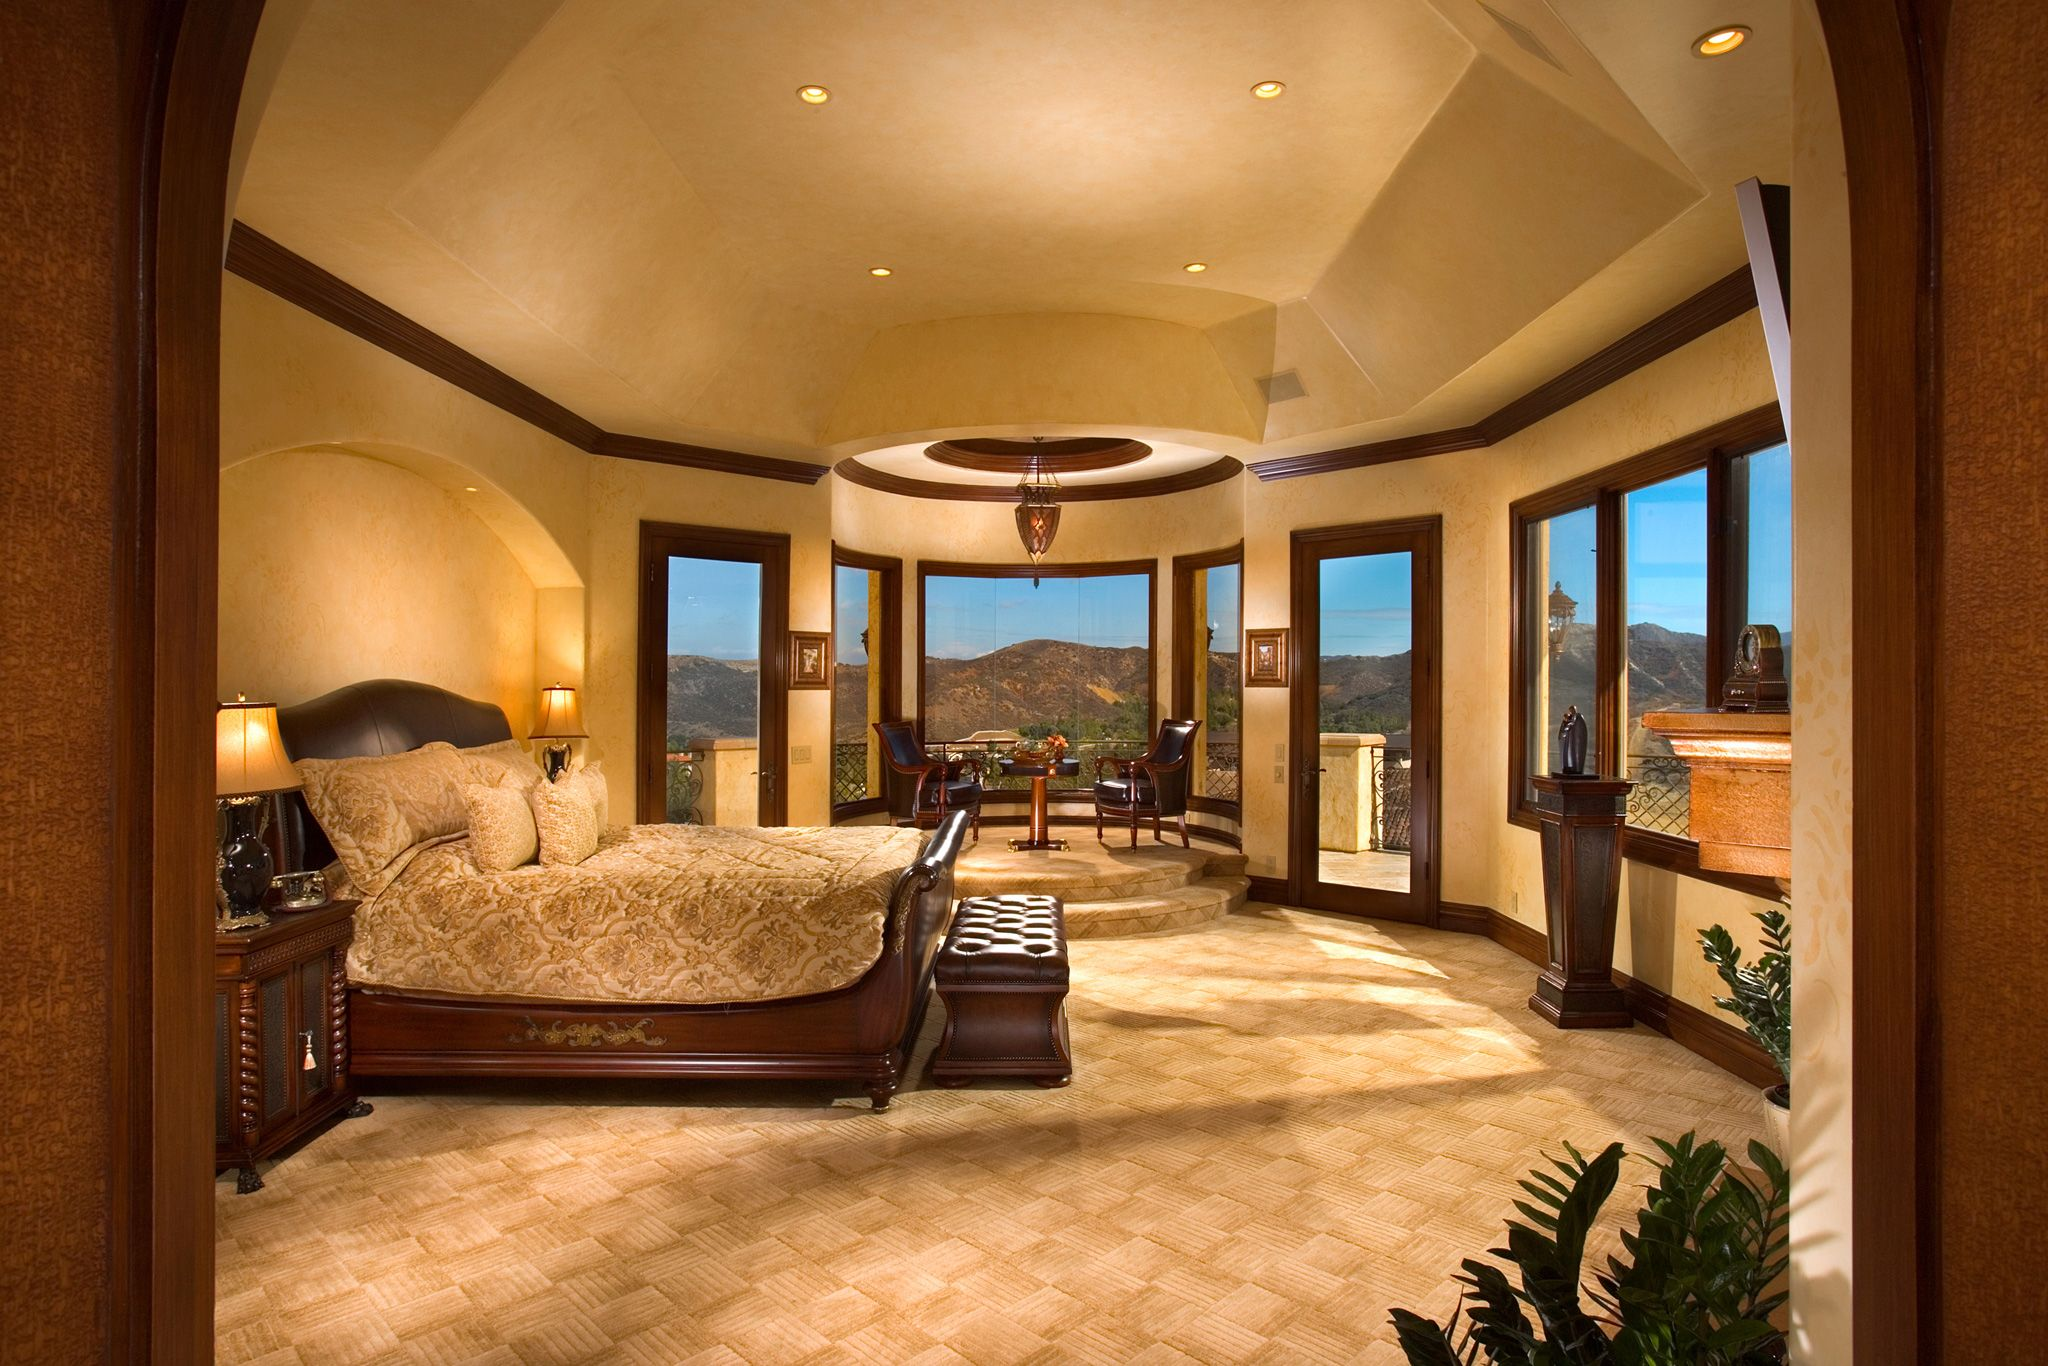 21 incredible master bedrooms design ideas luxury master for Pics of luxury bedrooms